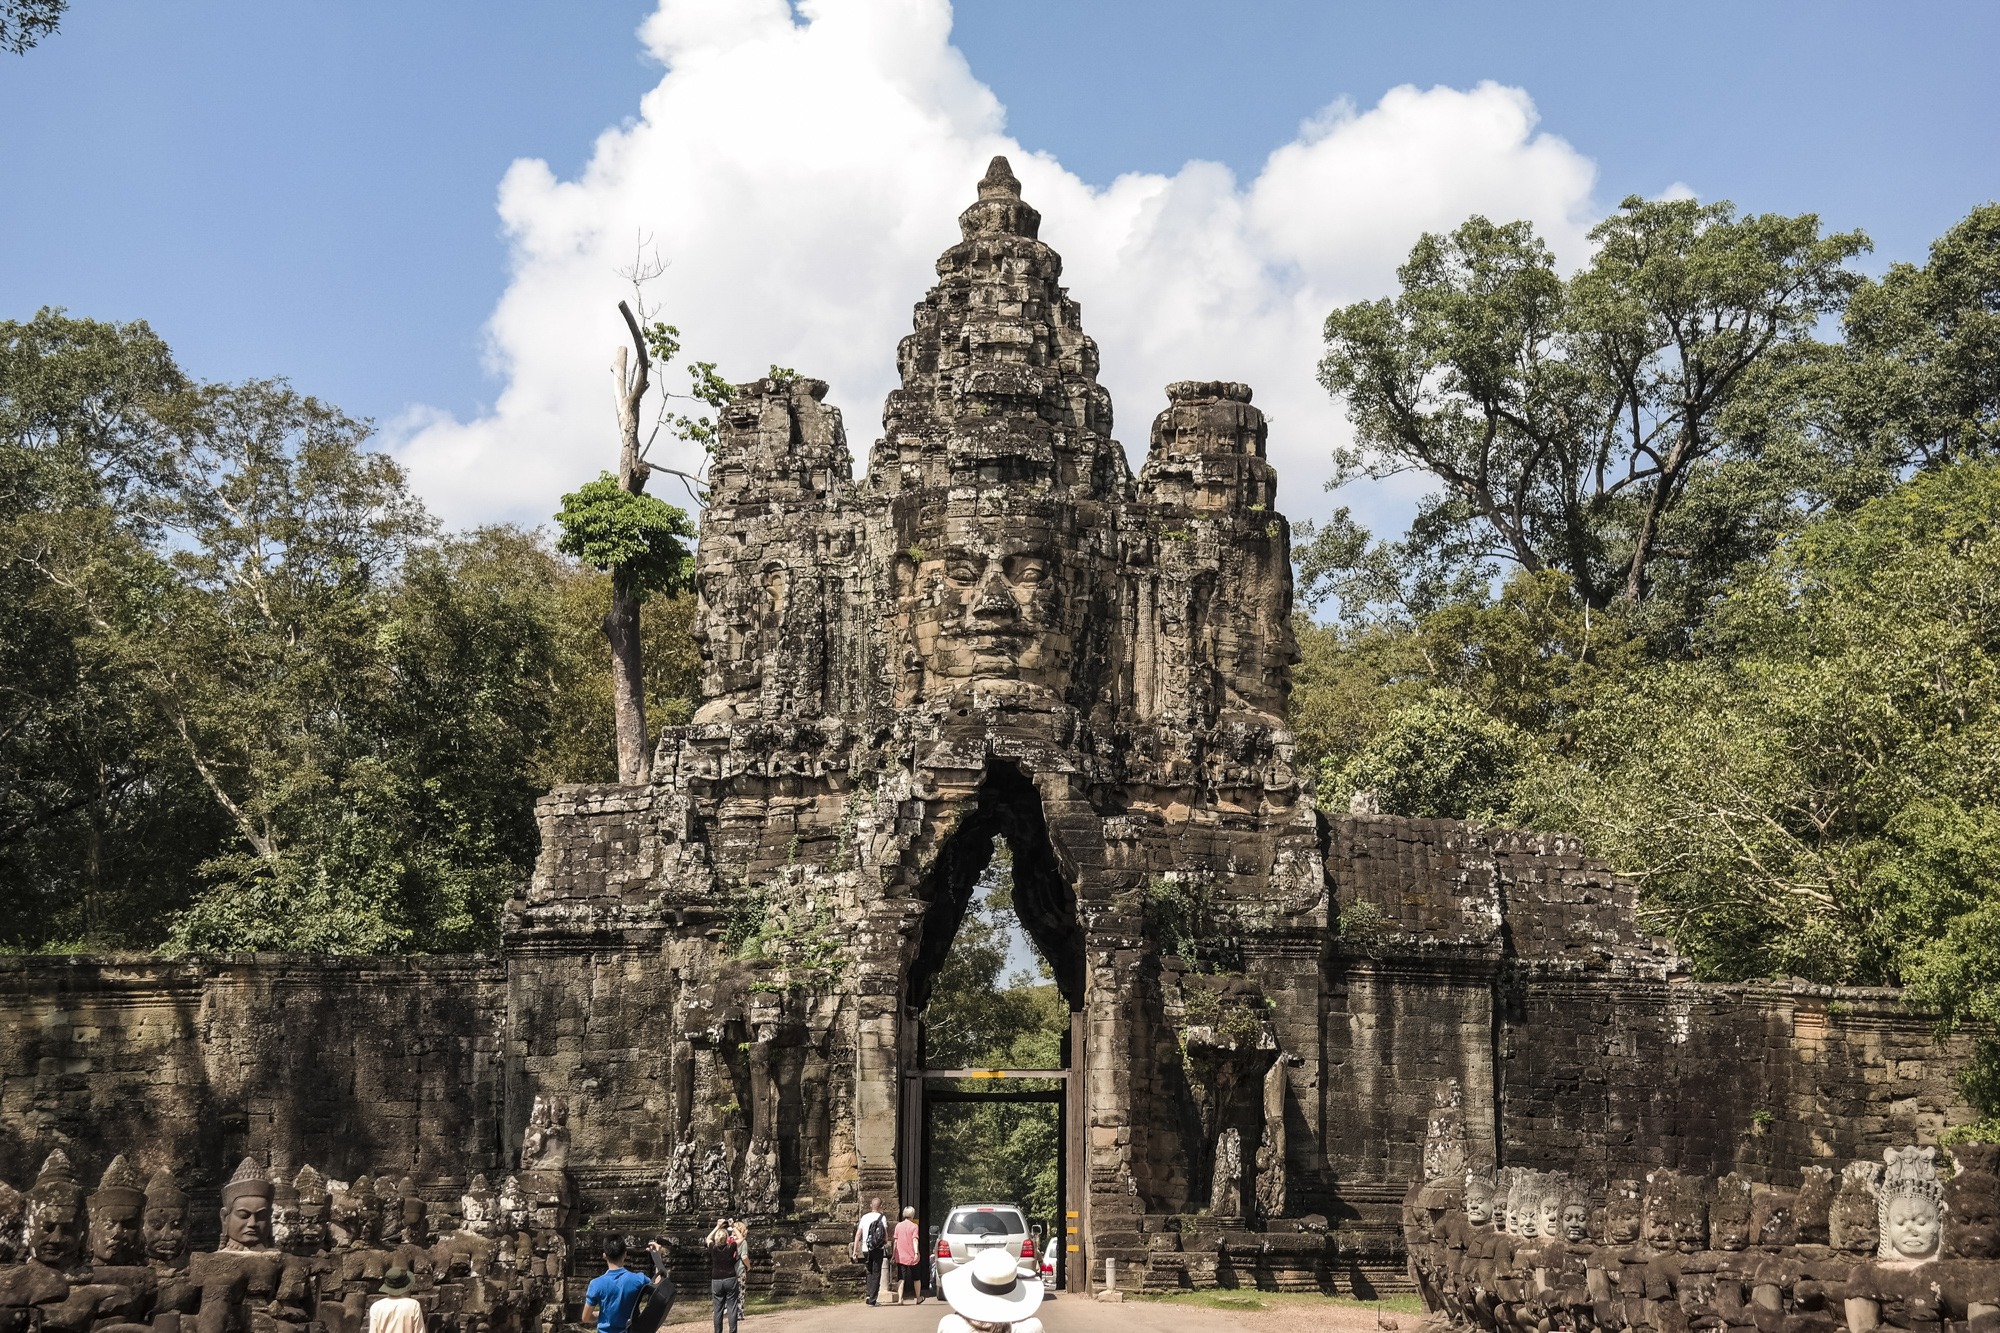 Cambodia, Siem Reap, Angkor Wat in 3 days